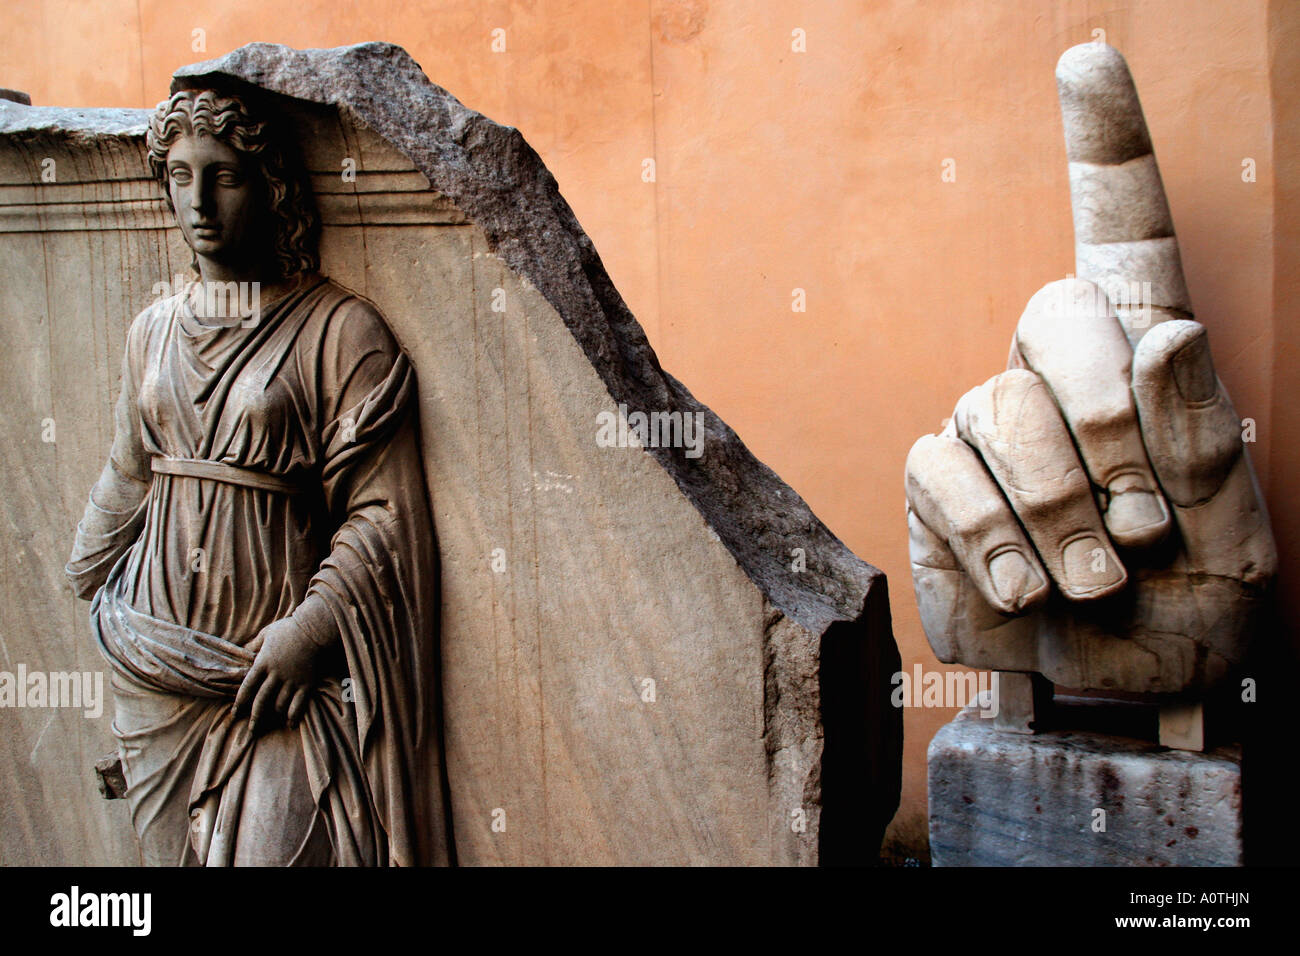 A relief Sculpture from the Temple of Hadrian in the Palazzo dei Conservatori. Part of the Musei Capitolini Rome - Stock Image